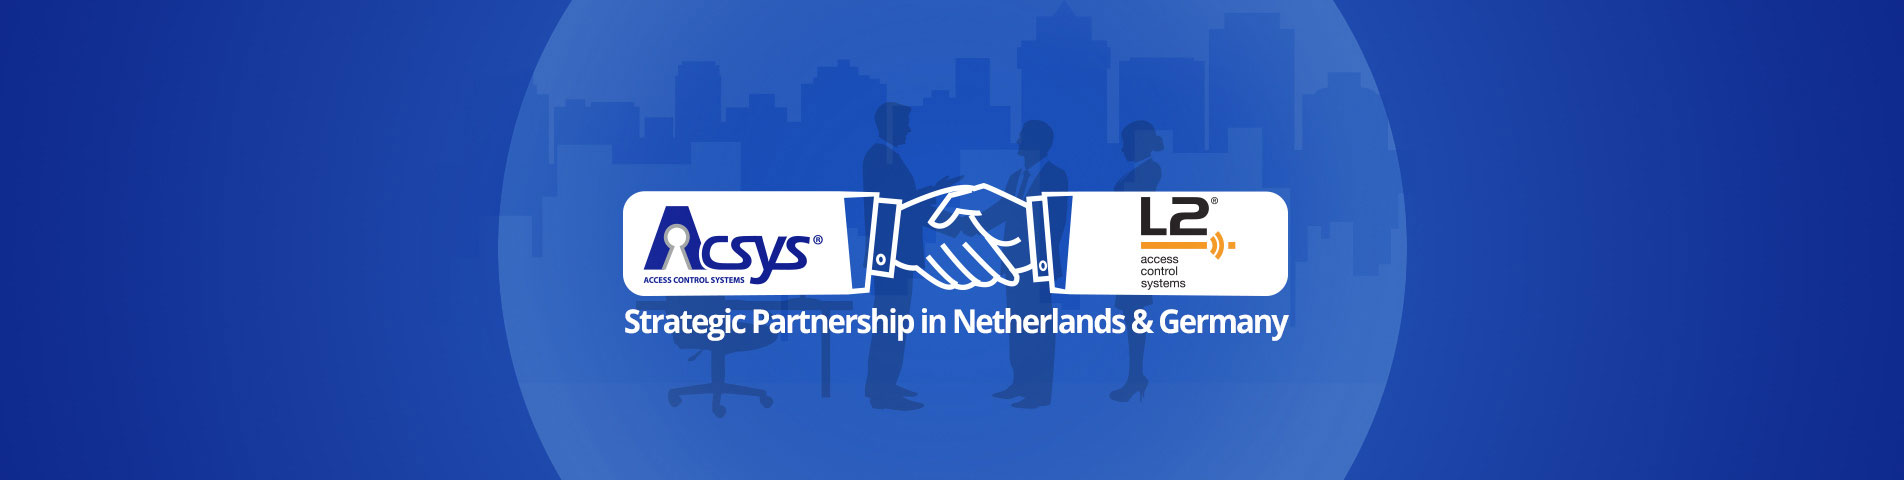 acsys-partnership